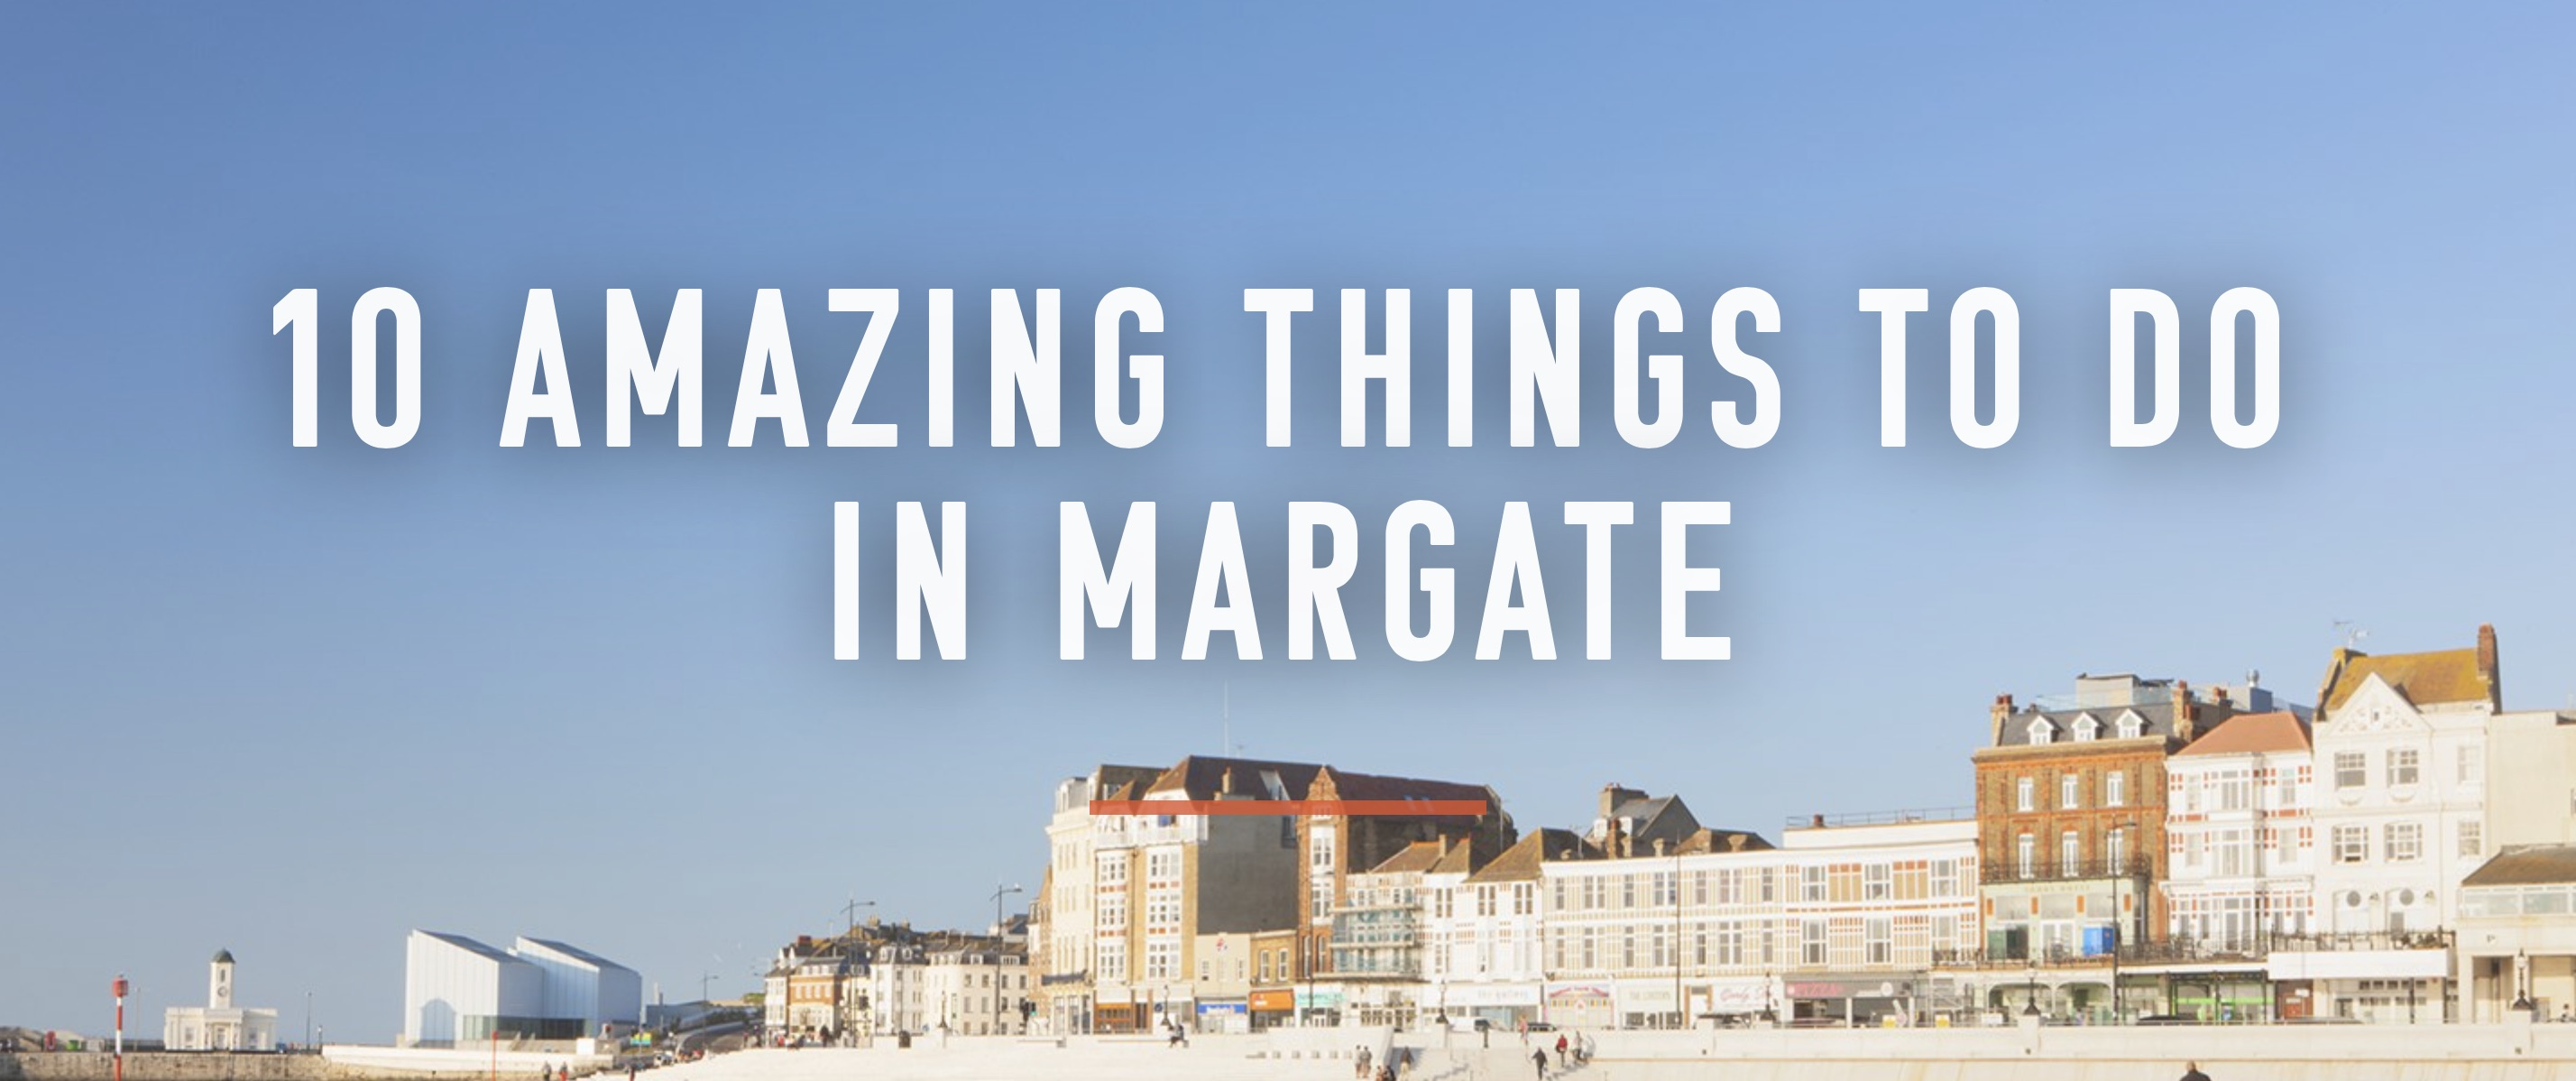 10 amazing things to do in Margate